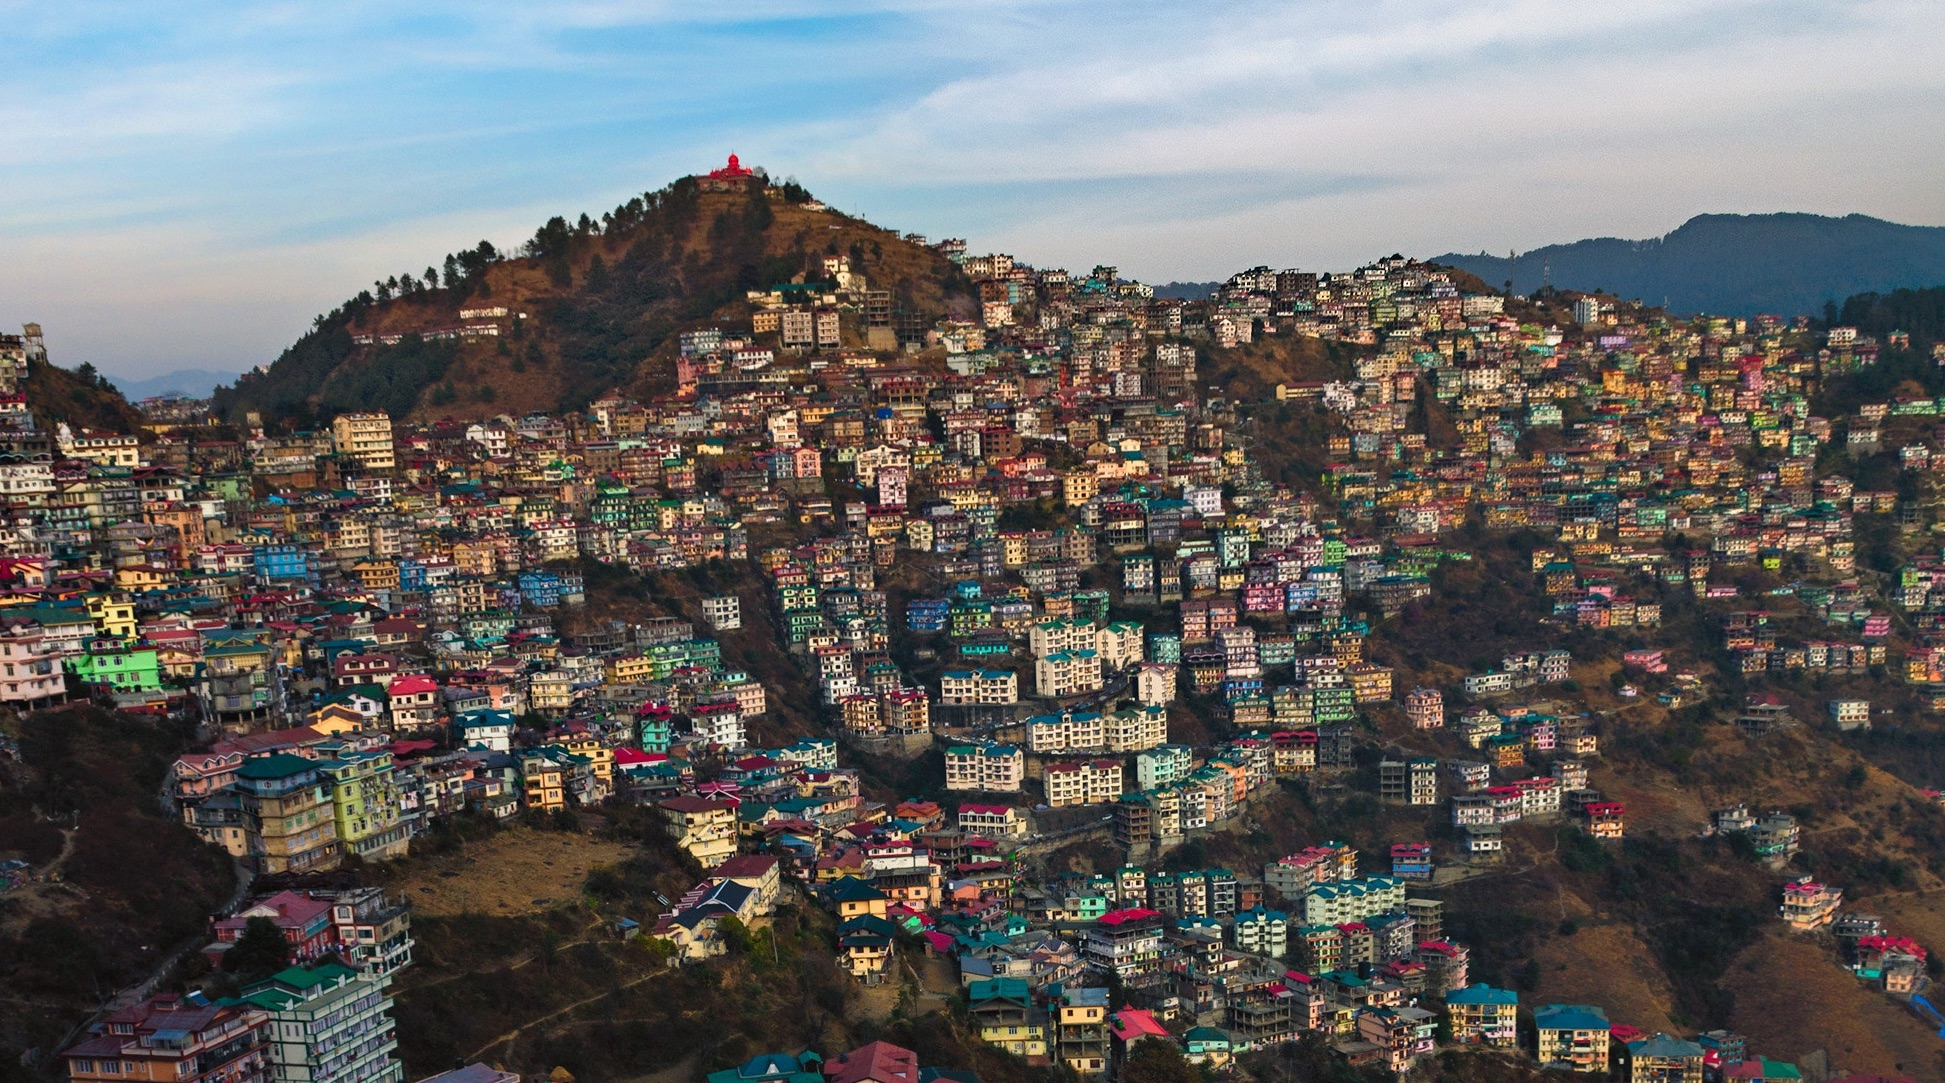 In popular culture and popular imagination, Shimla has been cast within the columns of its colonial heritage. Credit: Pritam Das Biswas/Unsplash